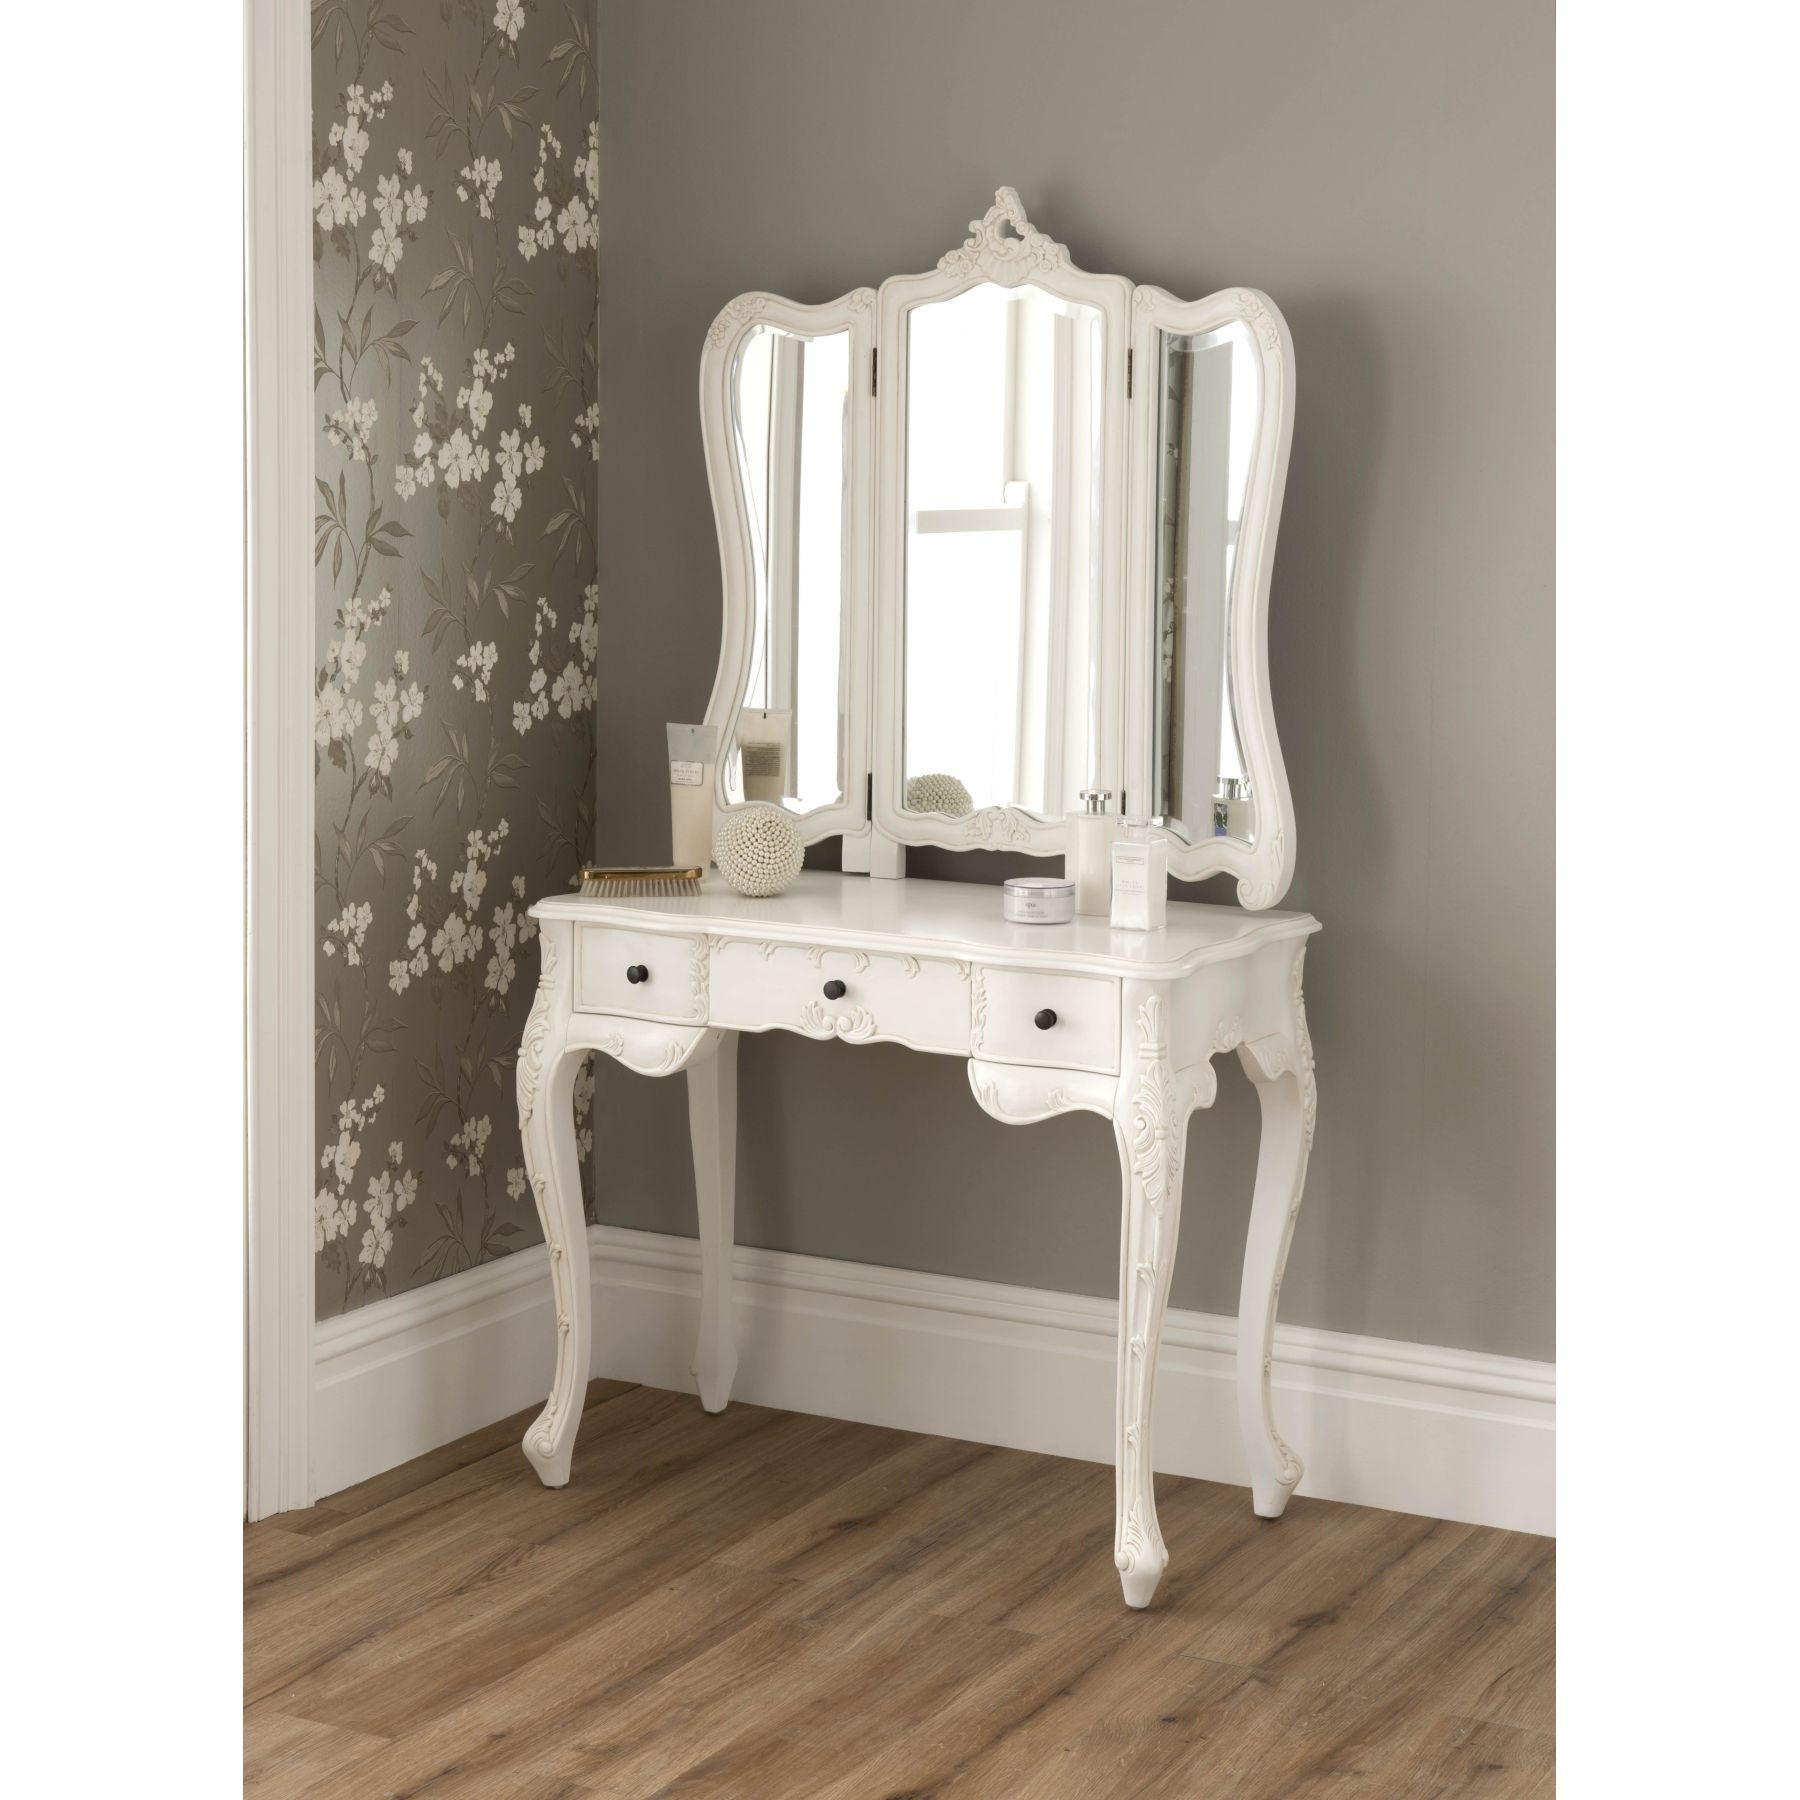 La Rochelle Antique French Dressing Table Shab Chic Intended For French Style Mirrors Cheap (Image 11 of 15)